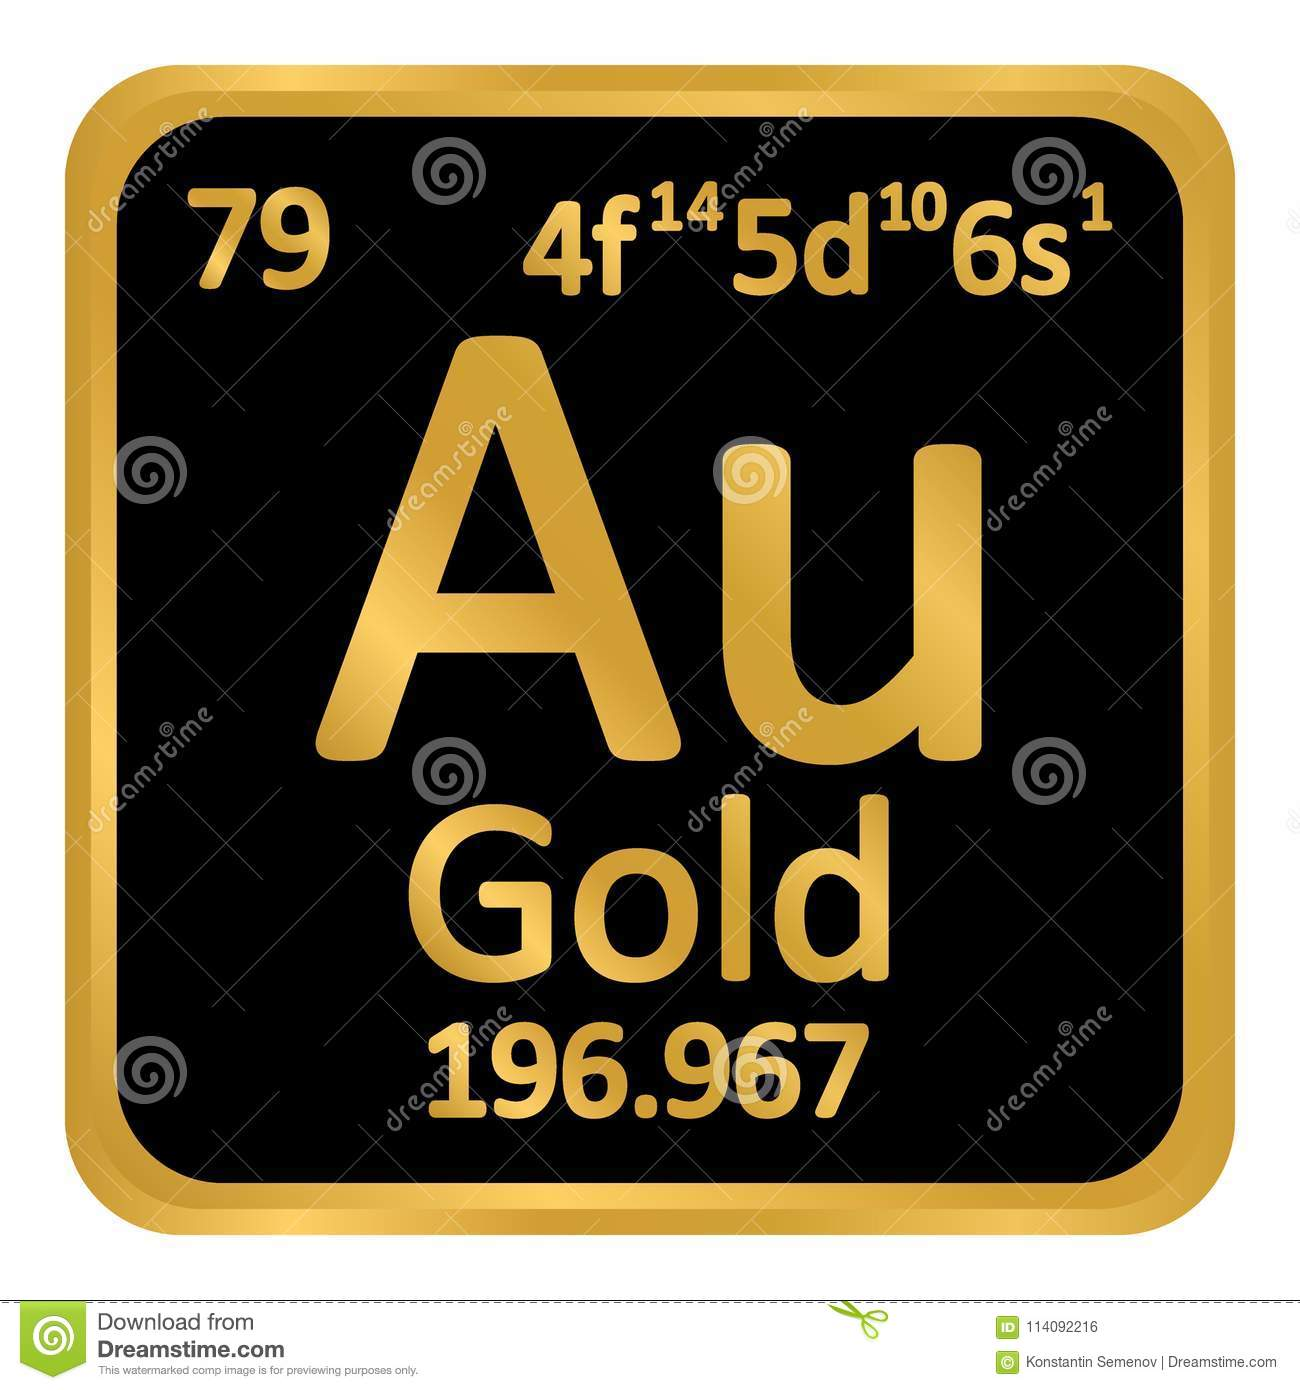 Periodic table element gold icon stock illustration illustration download periodic table element gold icon stock illustration illustration of periodic physics urtaz Gallery